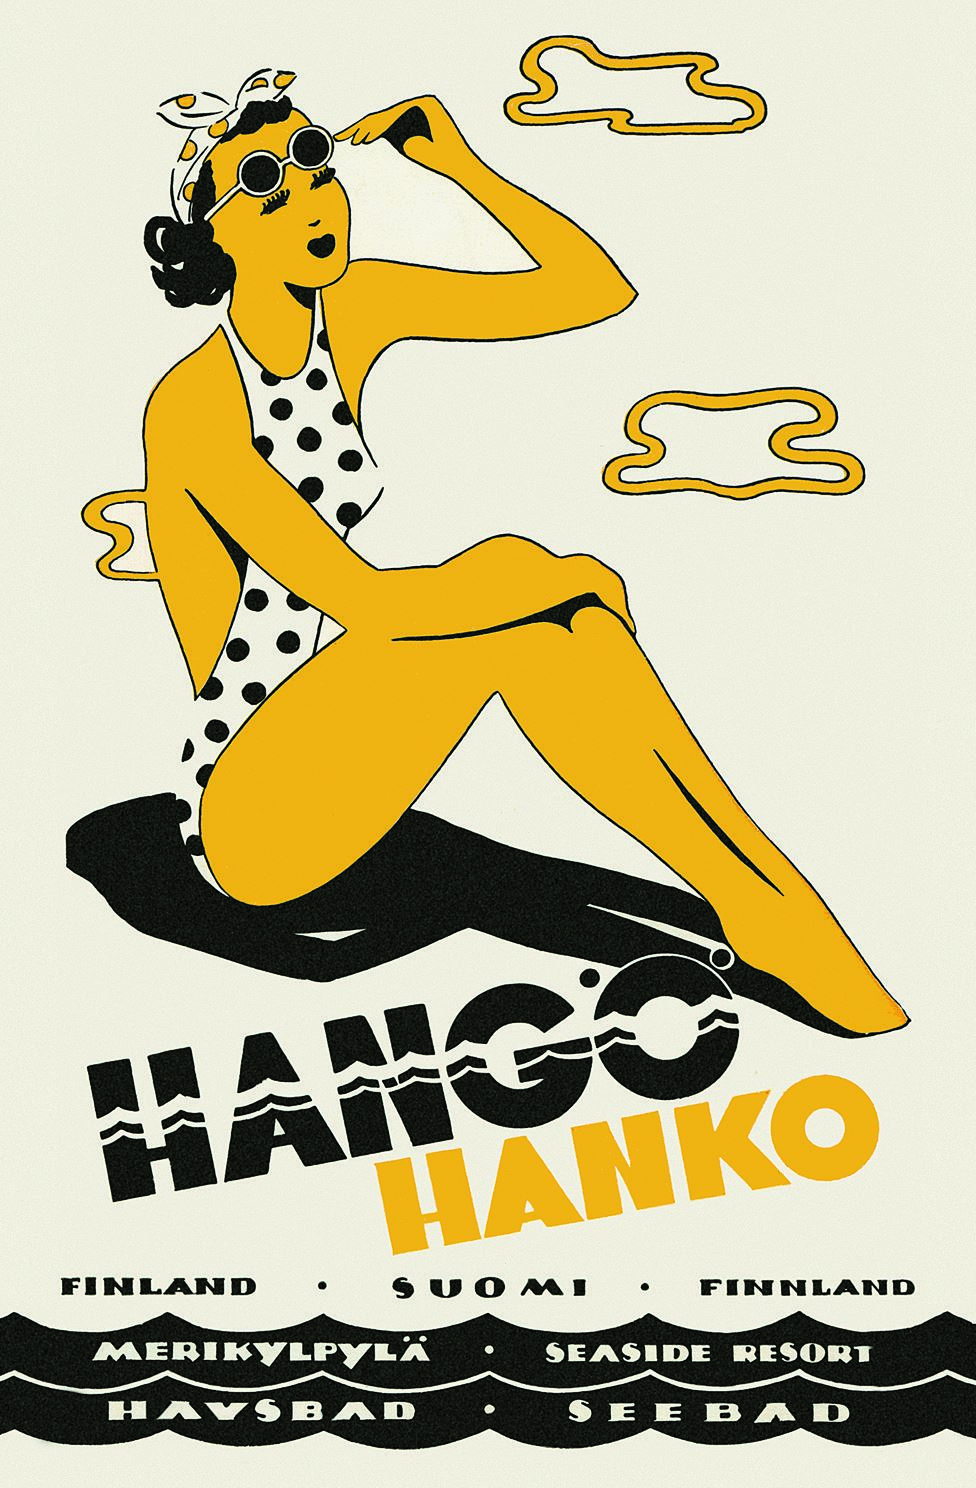 The Lady of Hanko poster